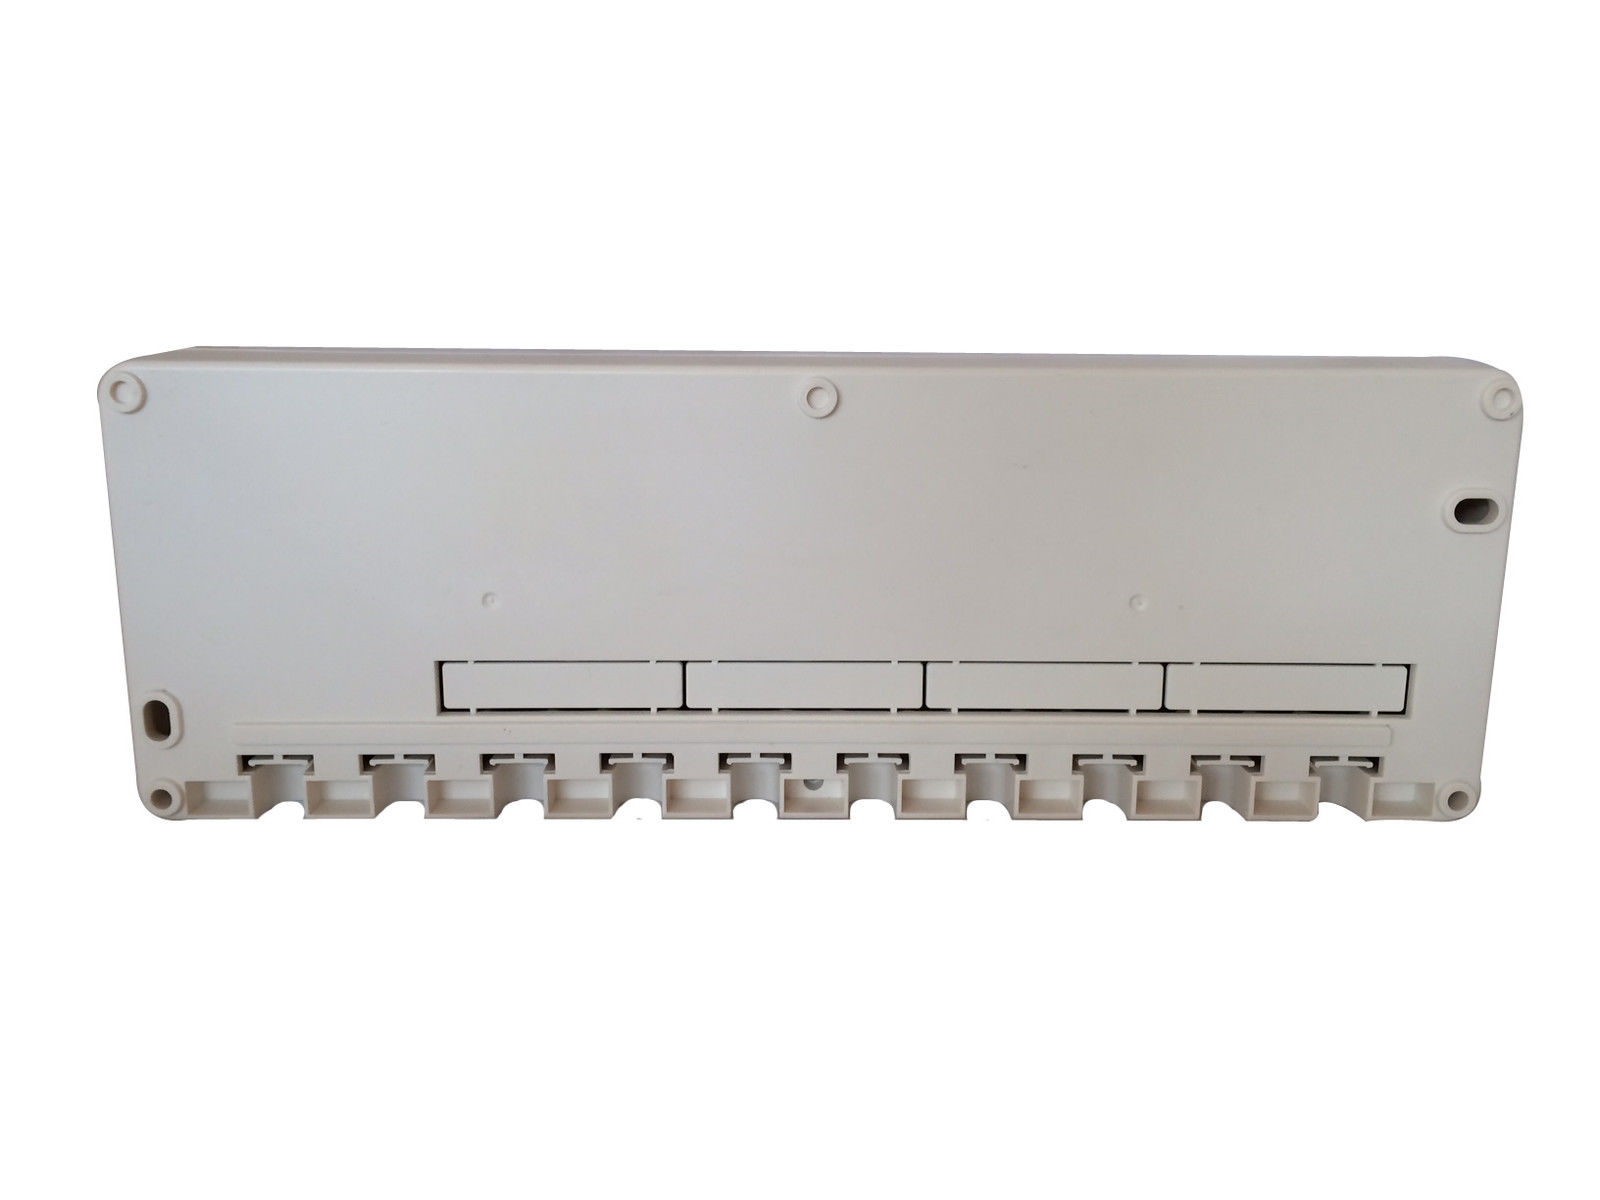 underfloor heating wiring diagram controls 3 phase 6 lead motor reliance 8 zone centre manifold